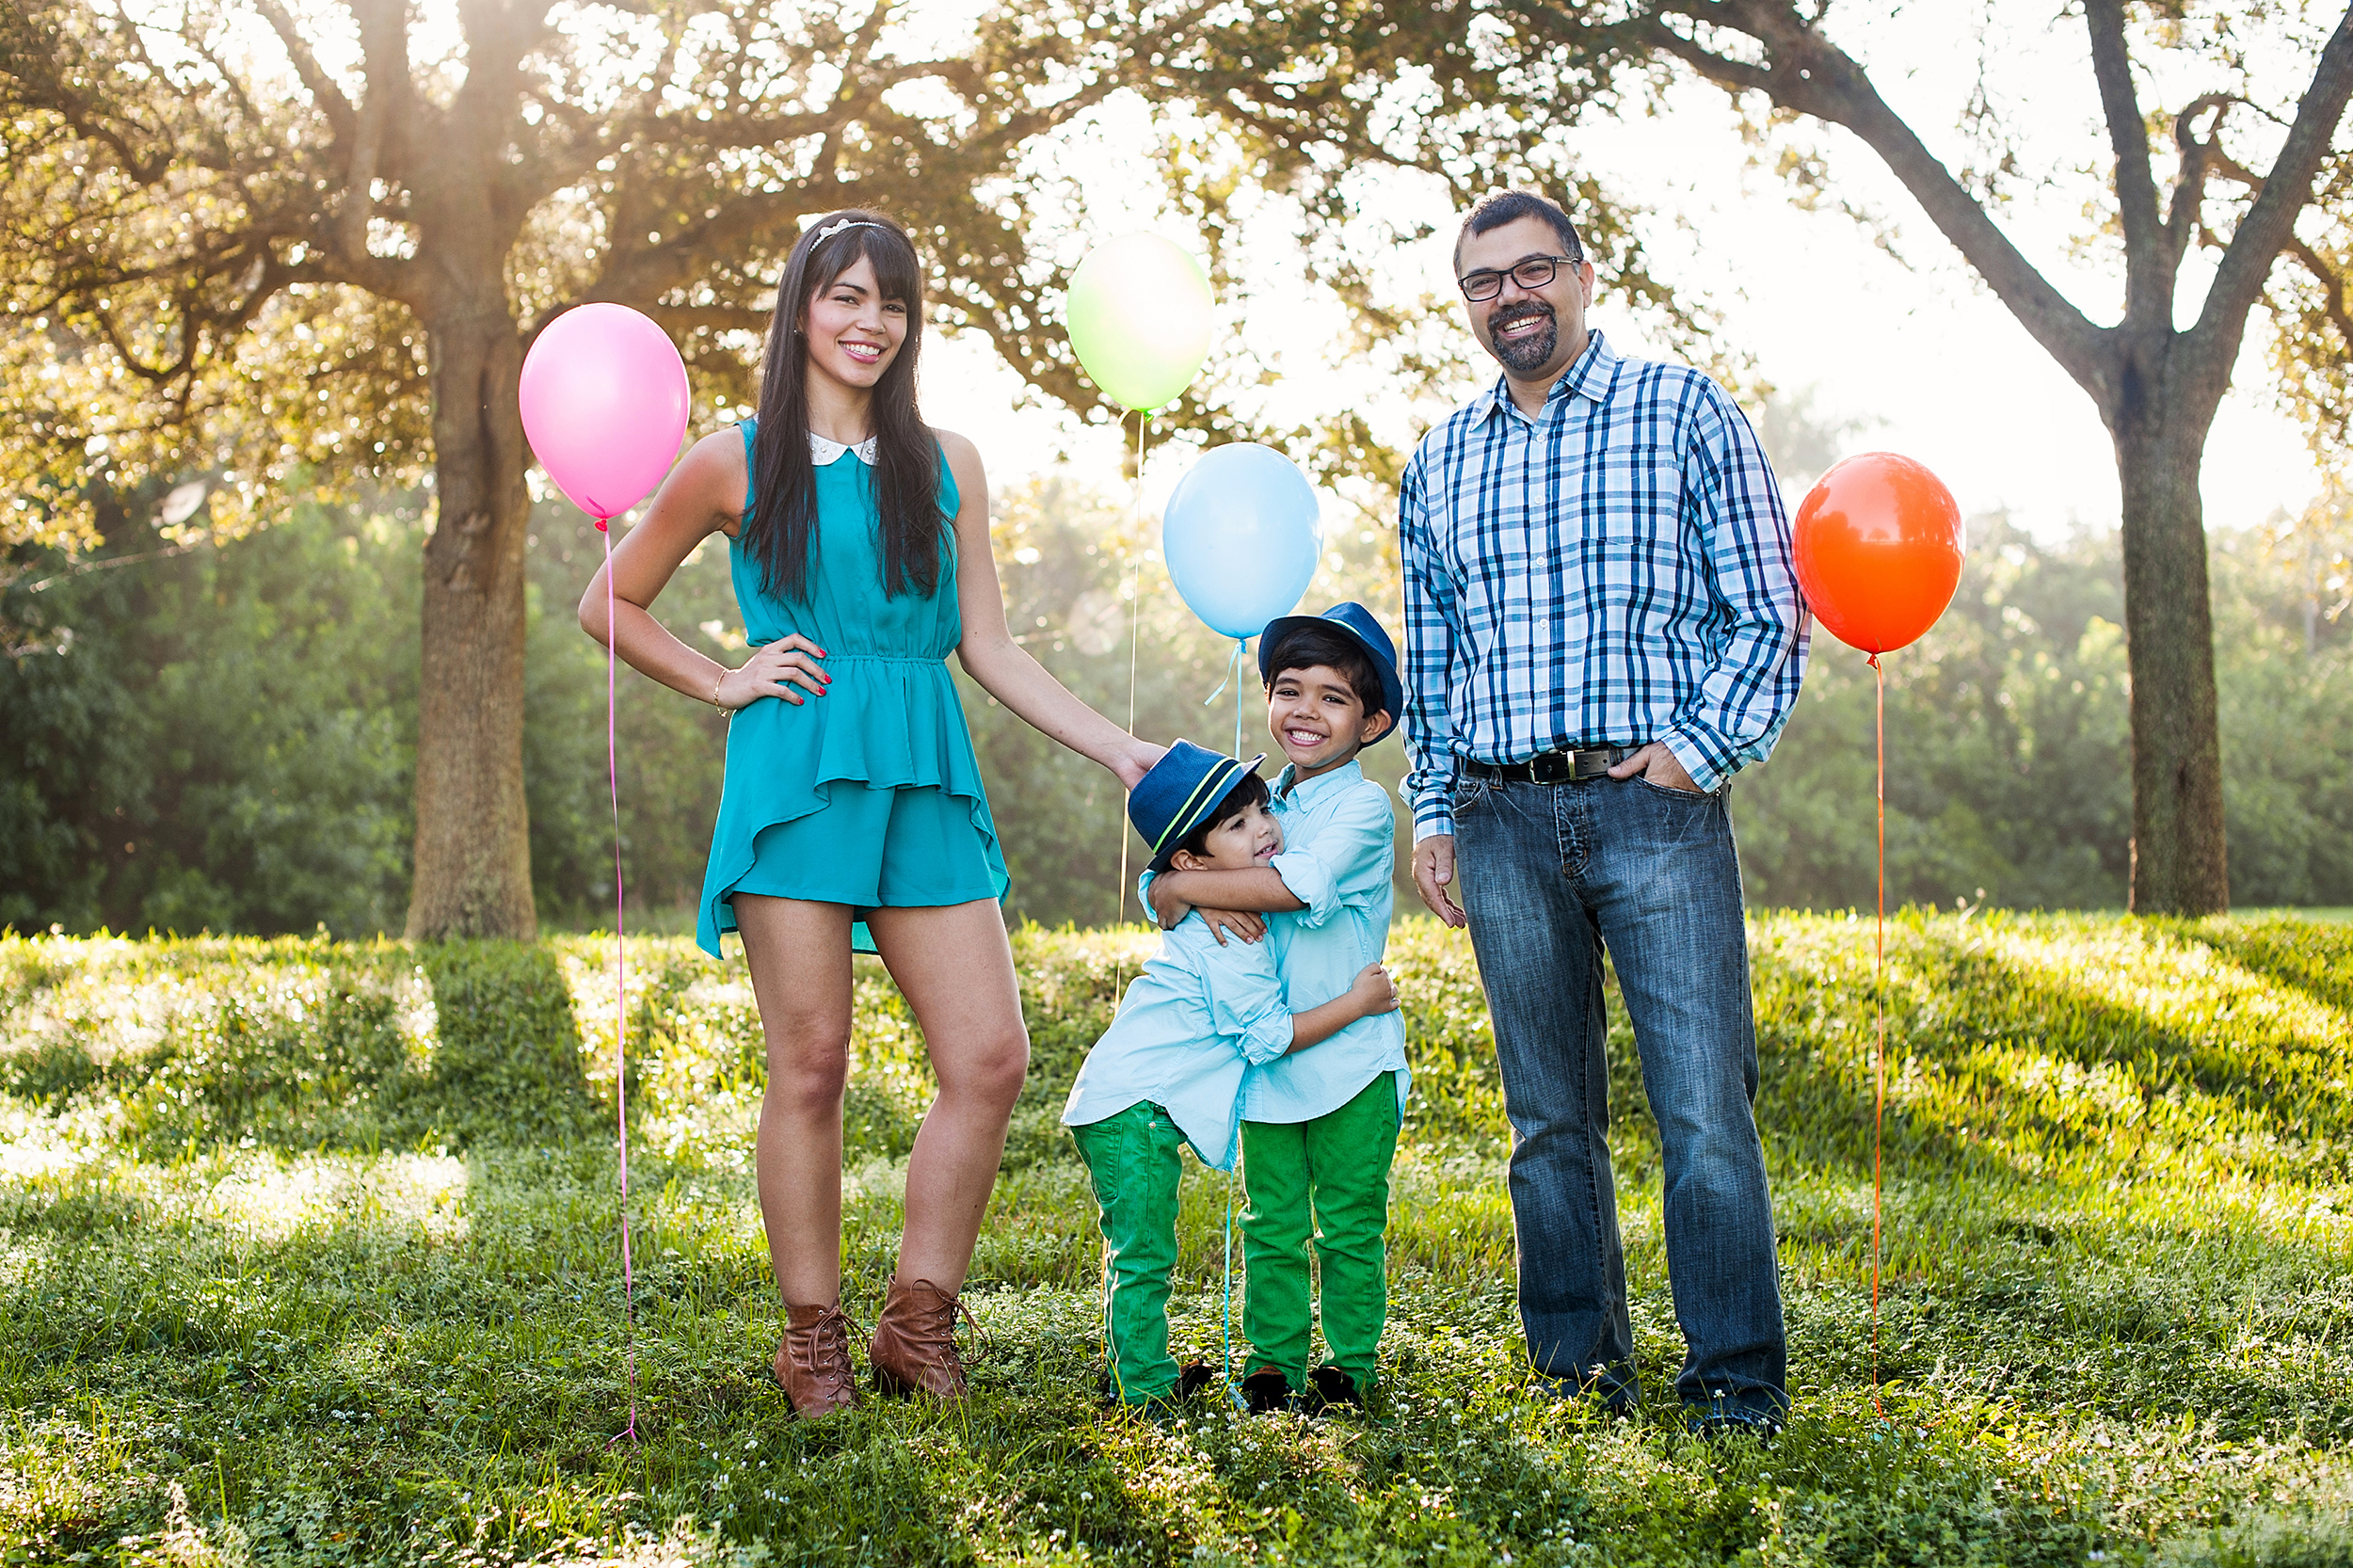 family-photography-south-florida-alison-frank-photography_16.jpg